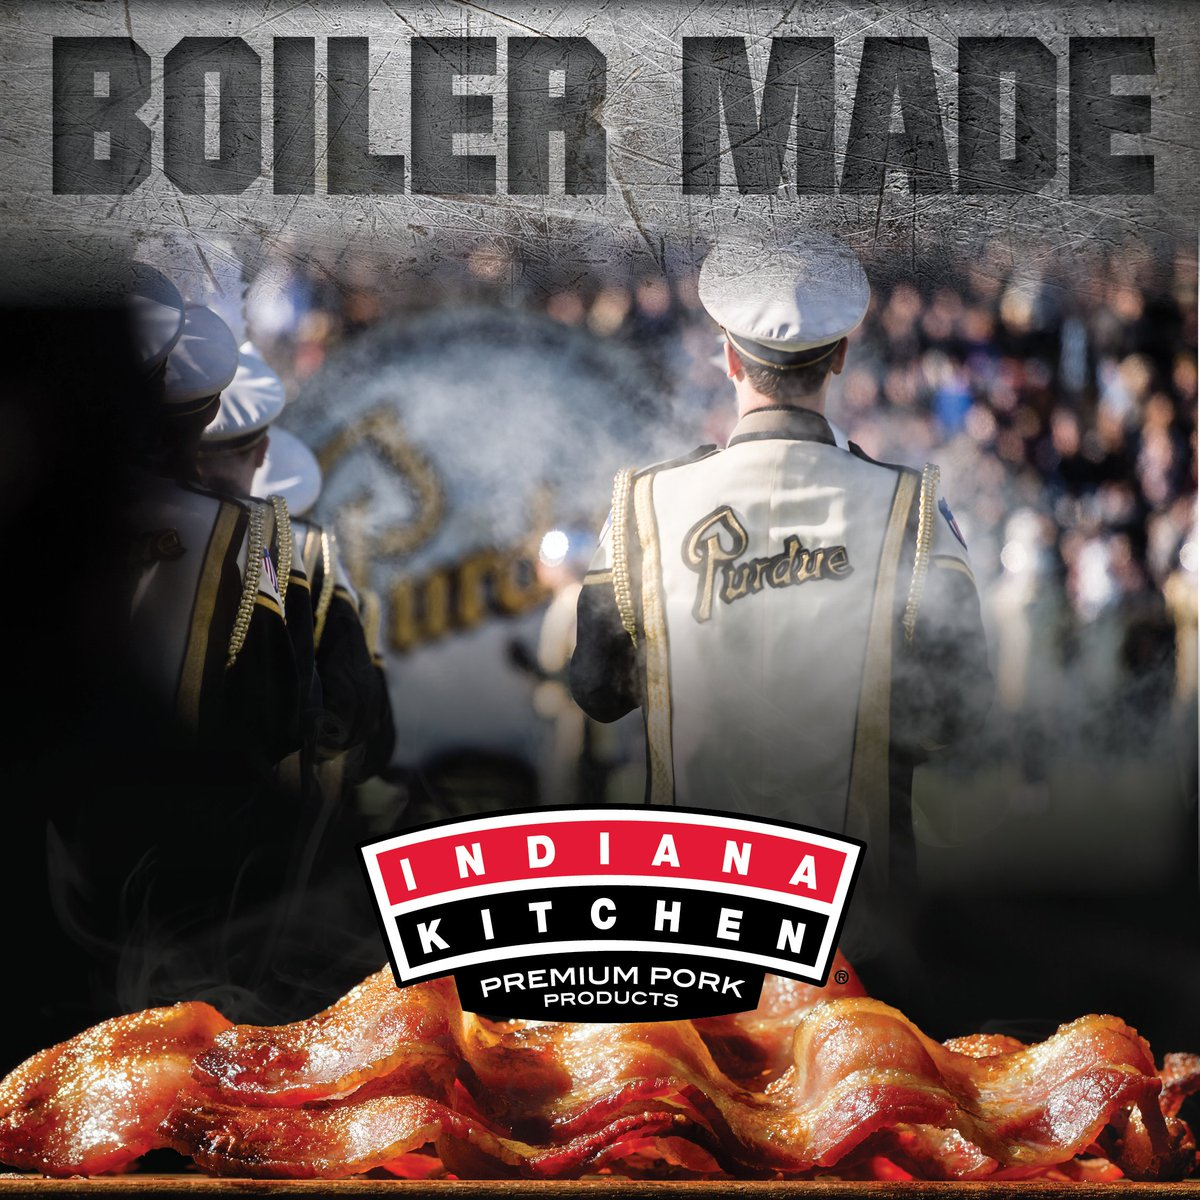 #BoilerUp! Hammer down!  It's black and gold versus black and yellow as the Boilermakers travel to Iowa this Saturday to take on the #23-ranked Hawkeyes.  Kickoff's at noon for this BIG10 Conference match-up.  Indiana Kitchen Bacon--not just locally made. Boiler made. https://t.co/DyCRV1H2kg